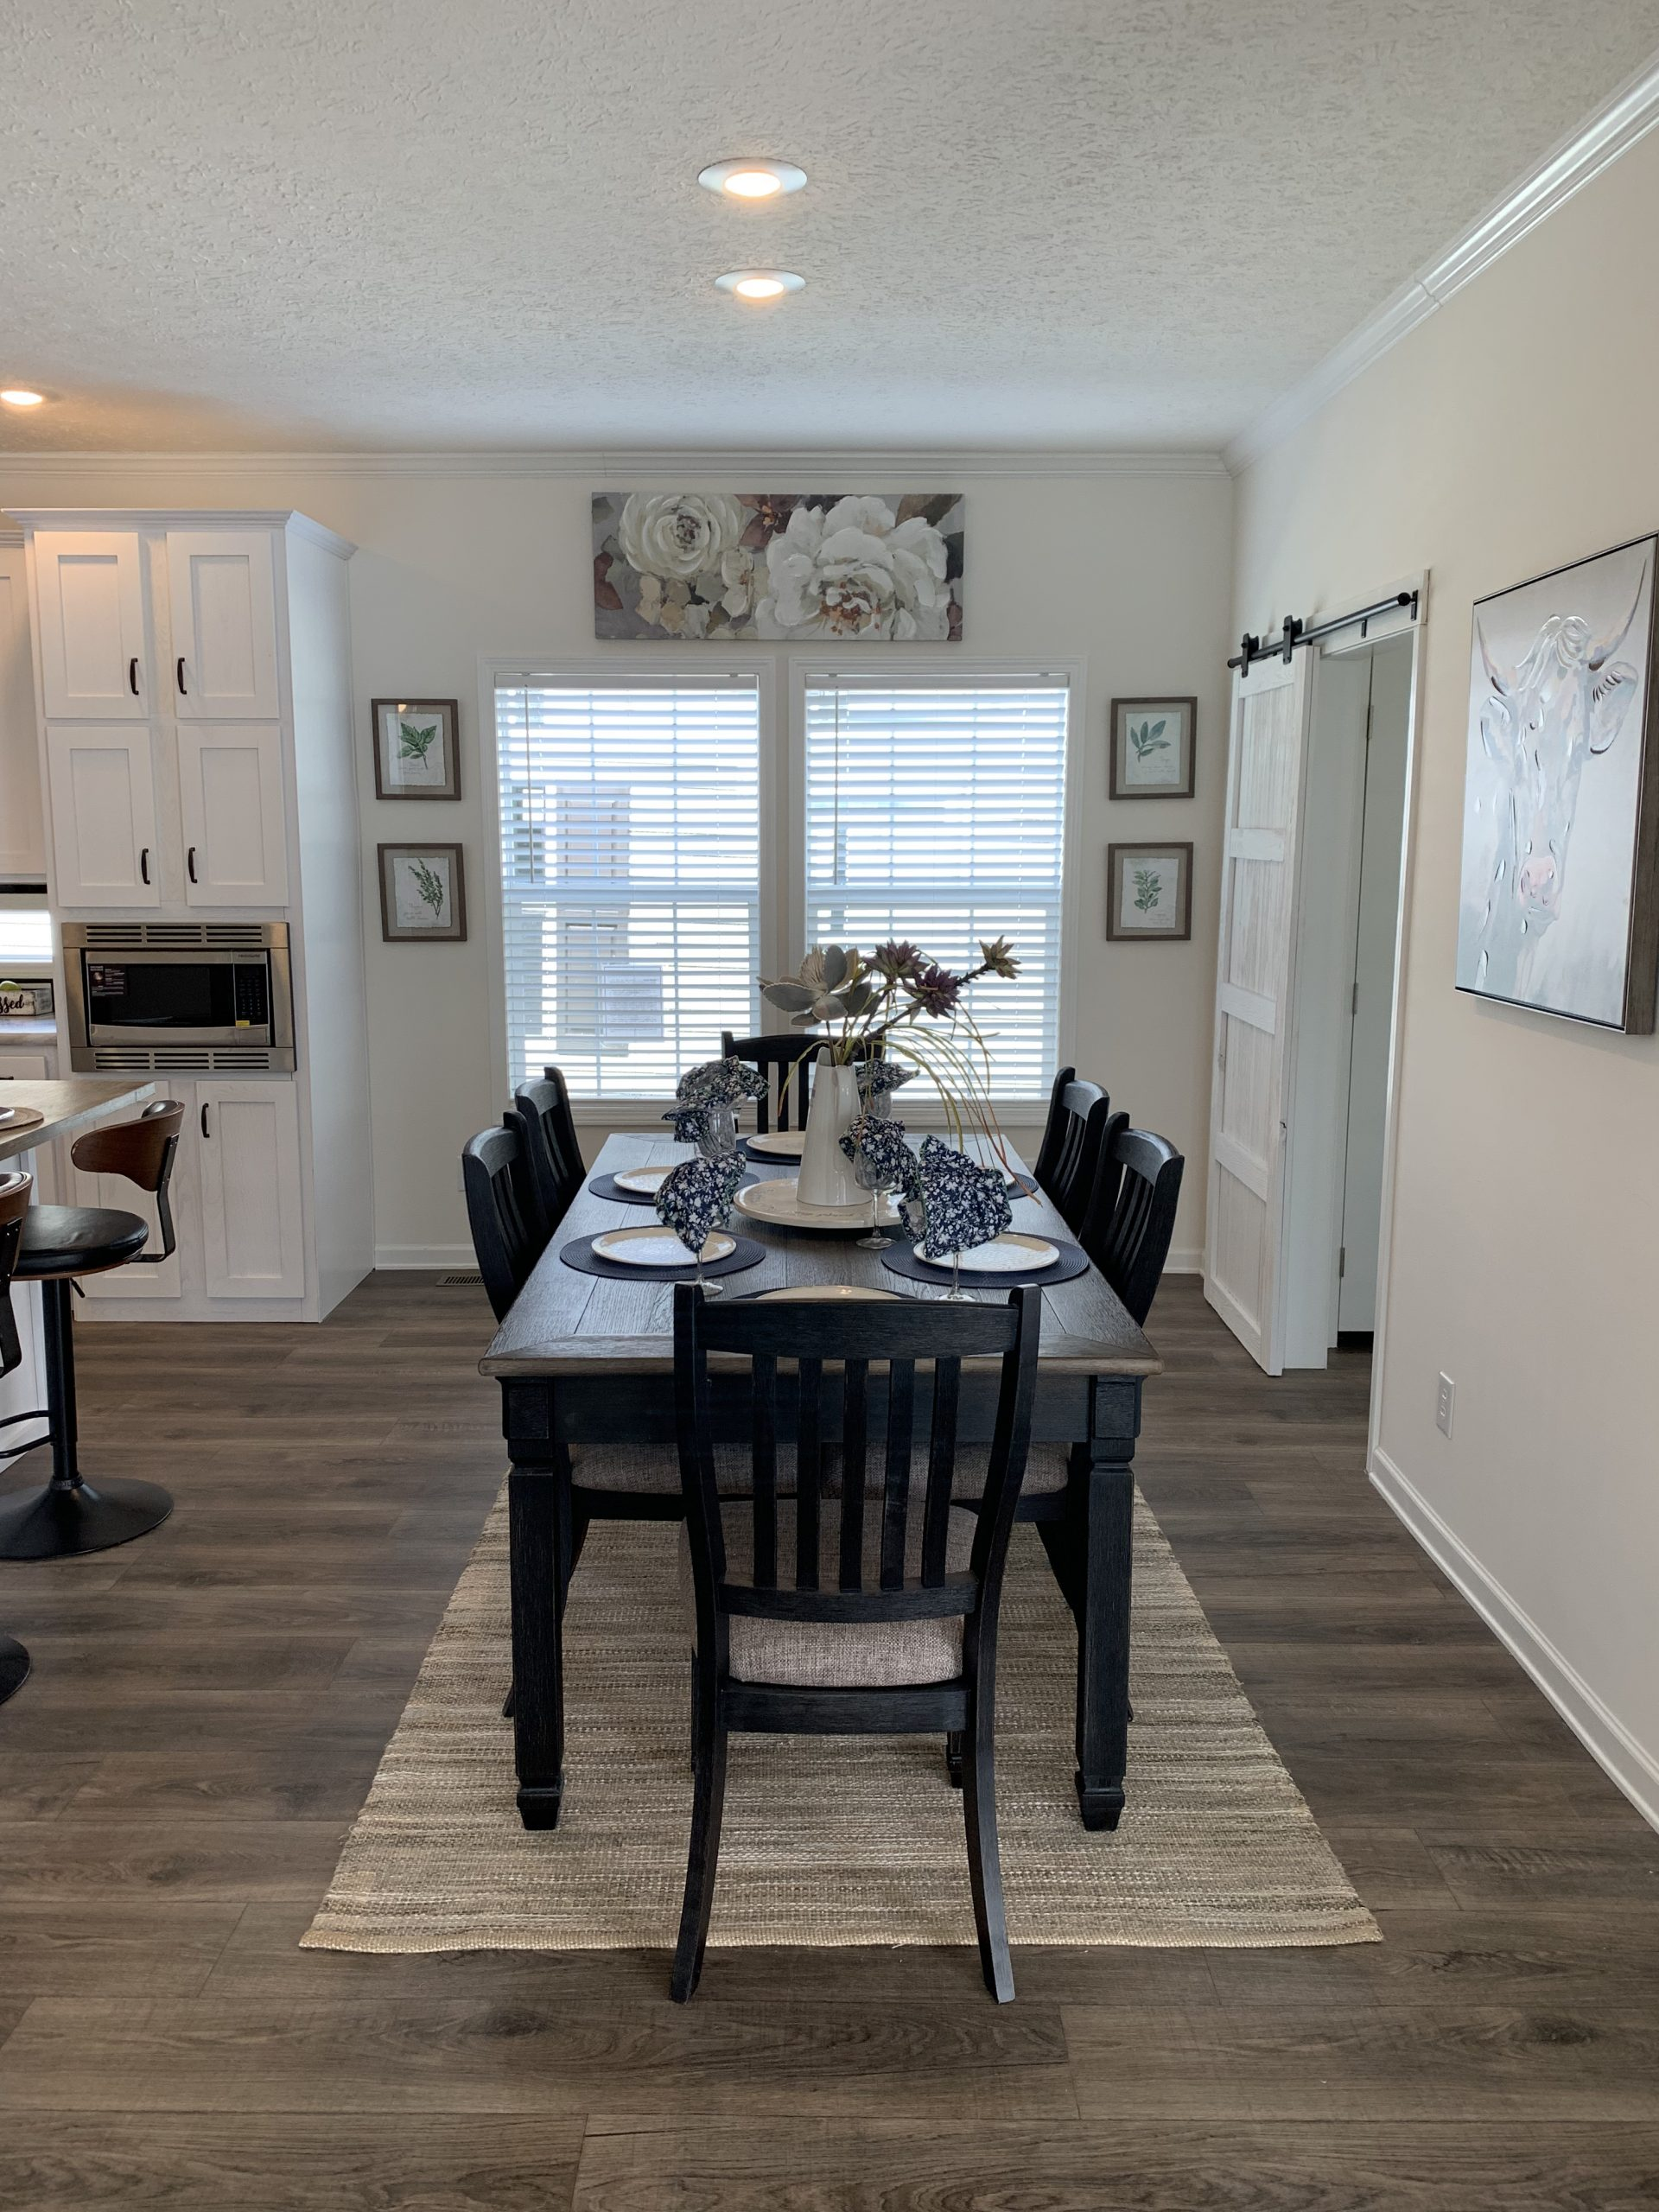 Model home kitchen with farmhouse dining table, black dining chairs, dining table tables cape, floral art hanging above windows, neutral area rug.